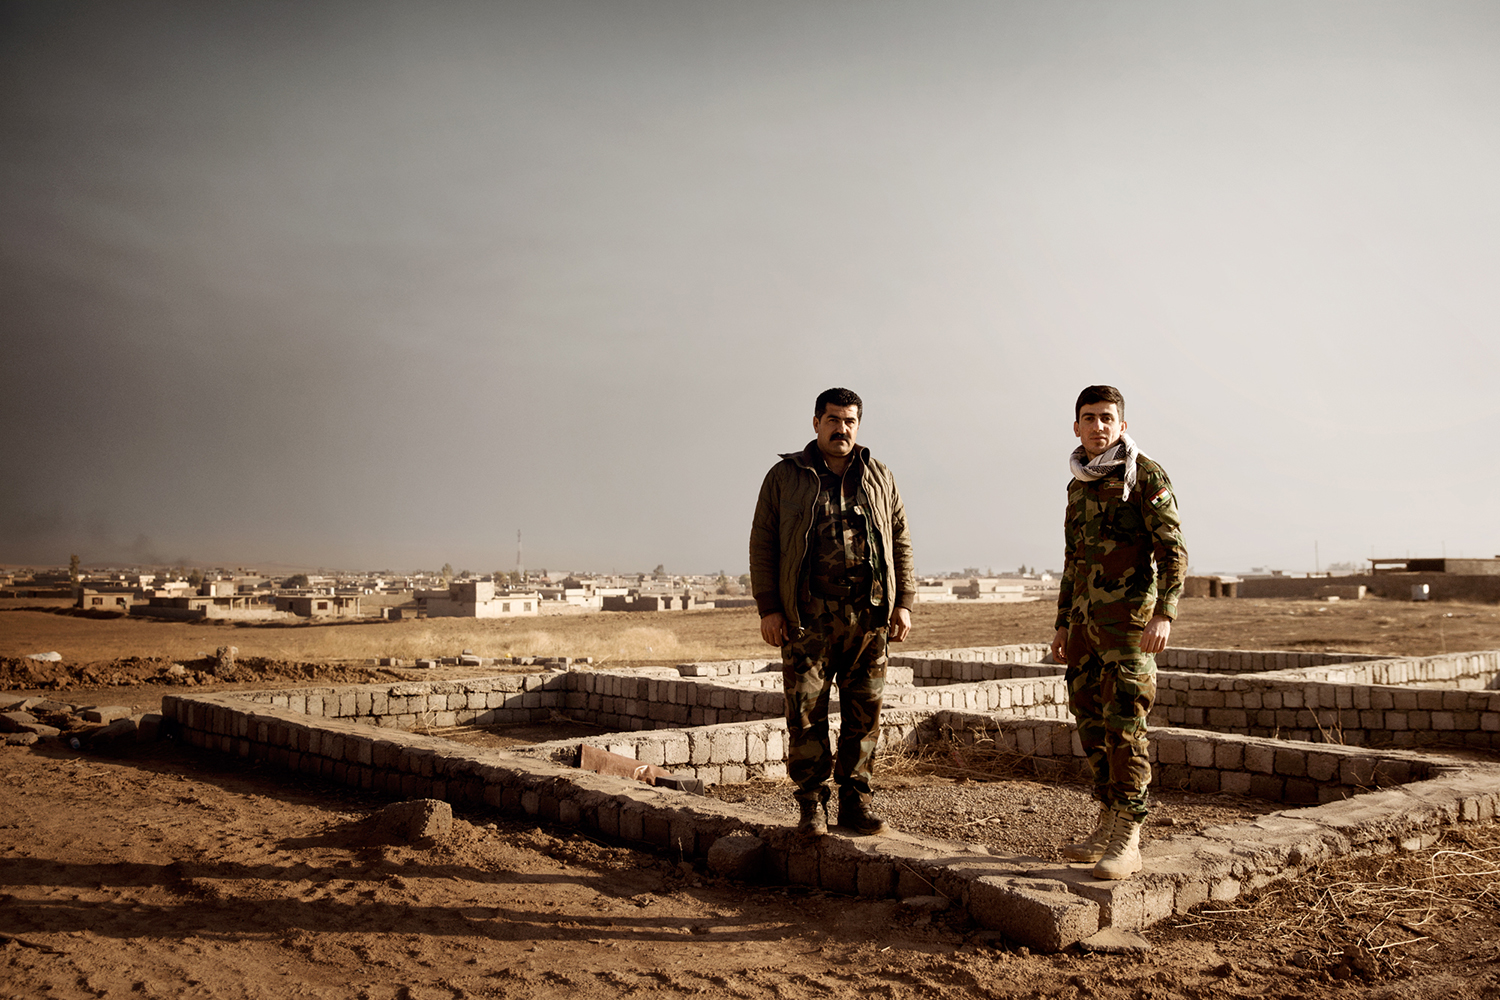 Two Peshmerga soldiers in front of a destroyed town in Kurdistan